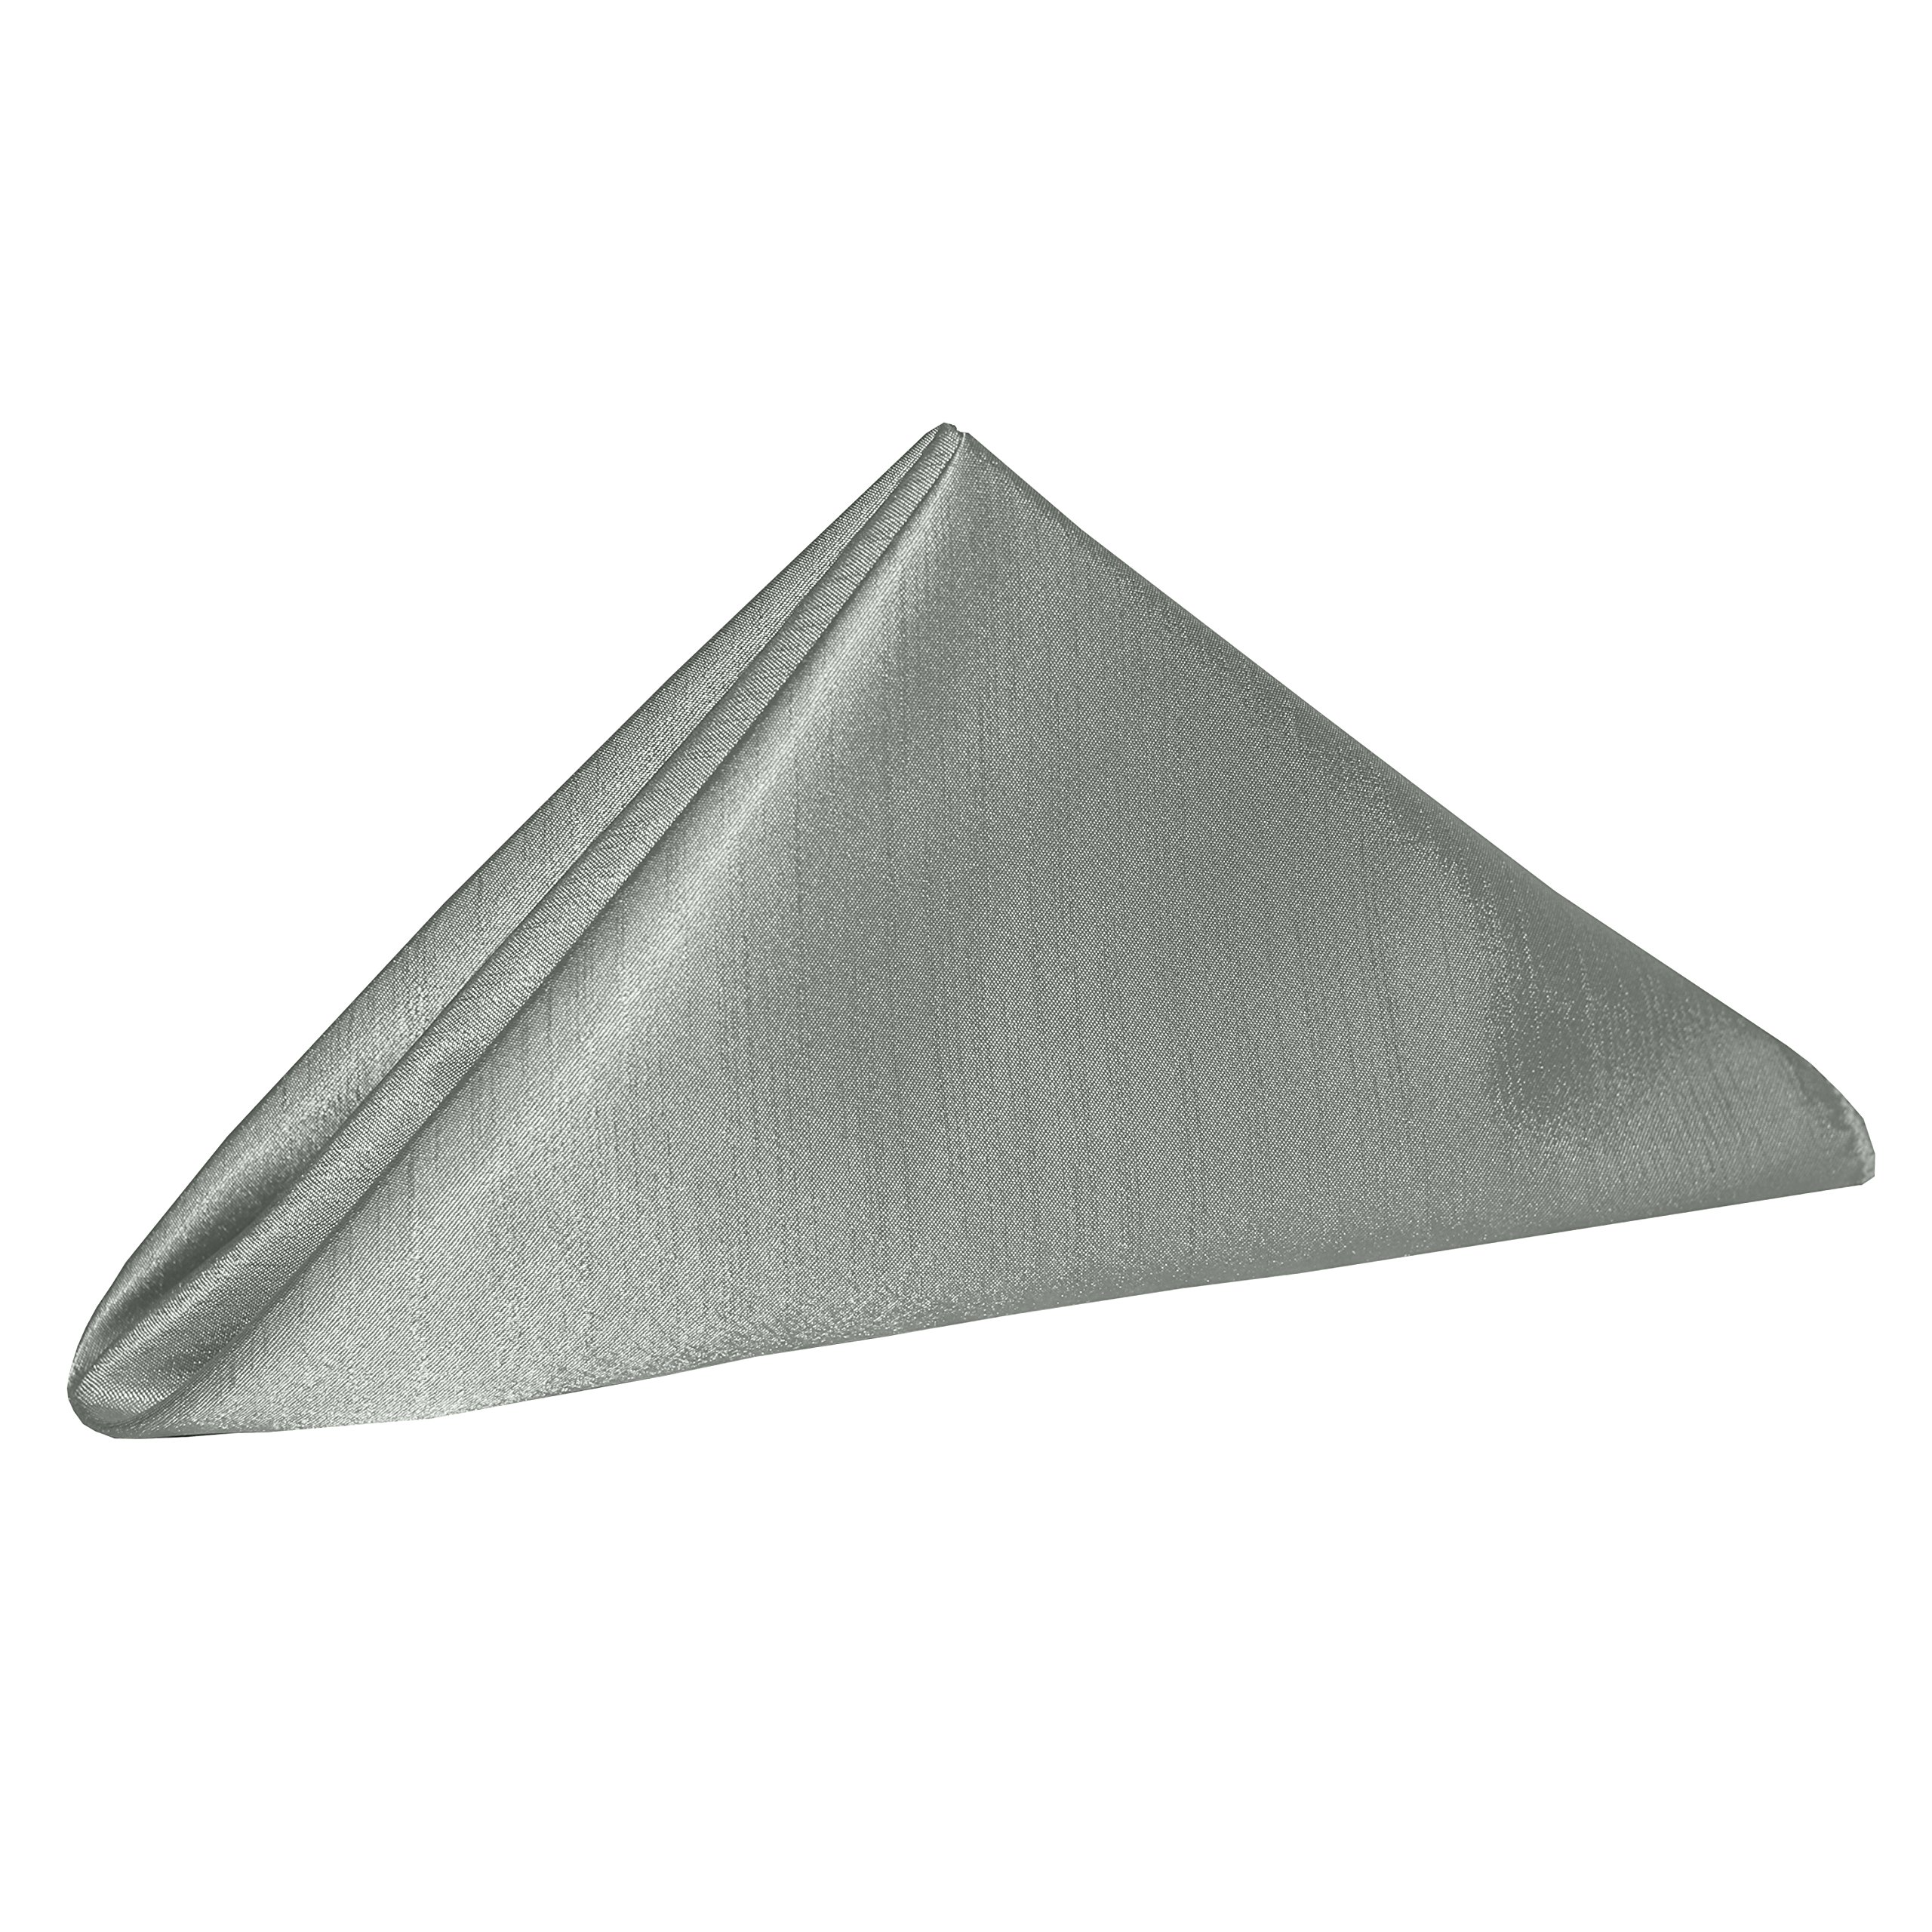 Ultimate Textile -10 Dozen- Reversible Shantung Satin - Majestic 17 x 17-Inch Cloth Napkins, Silver by Ultimate Textile (Image #2)